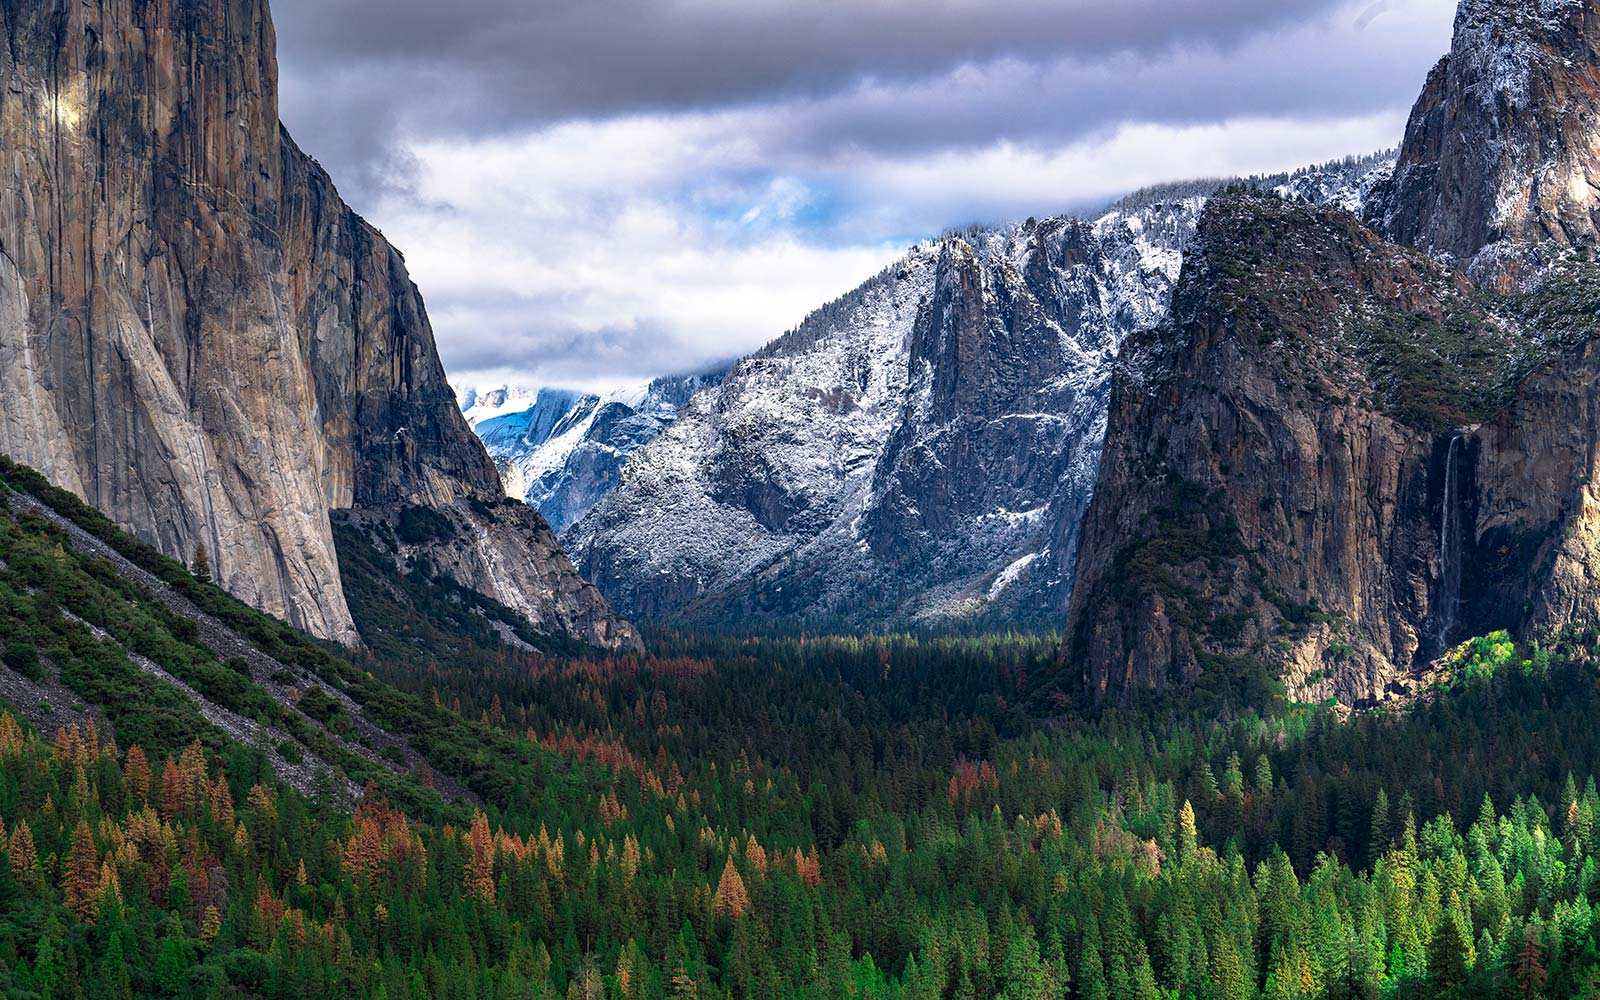 The Can't-miss Locations in National Parks Across the U.S.